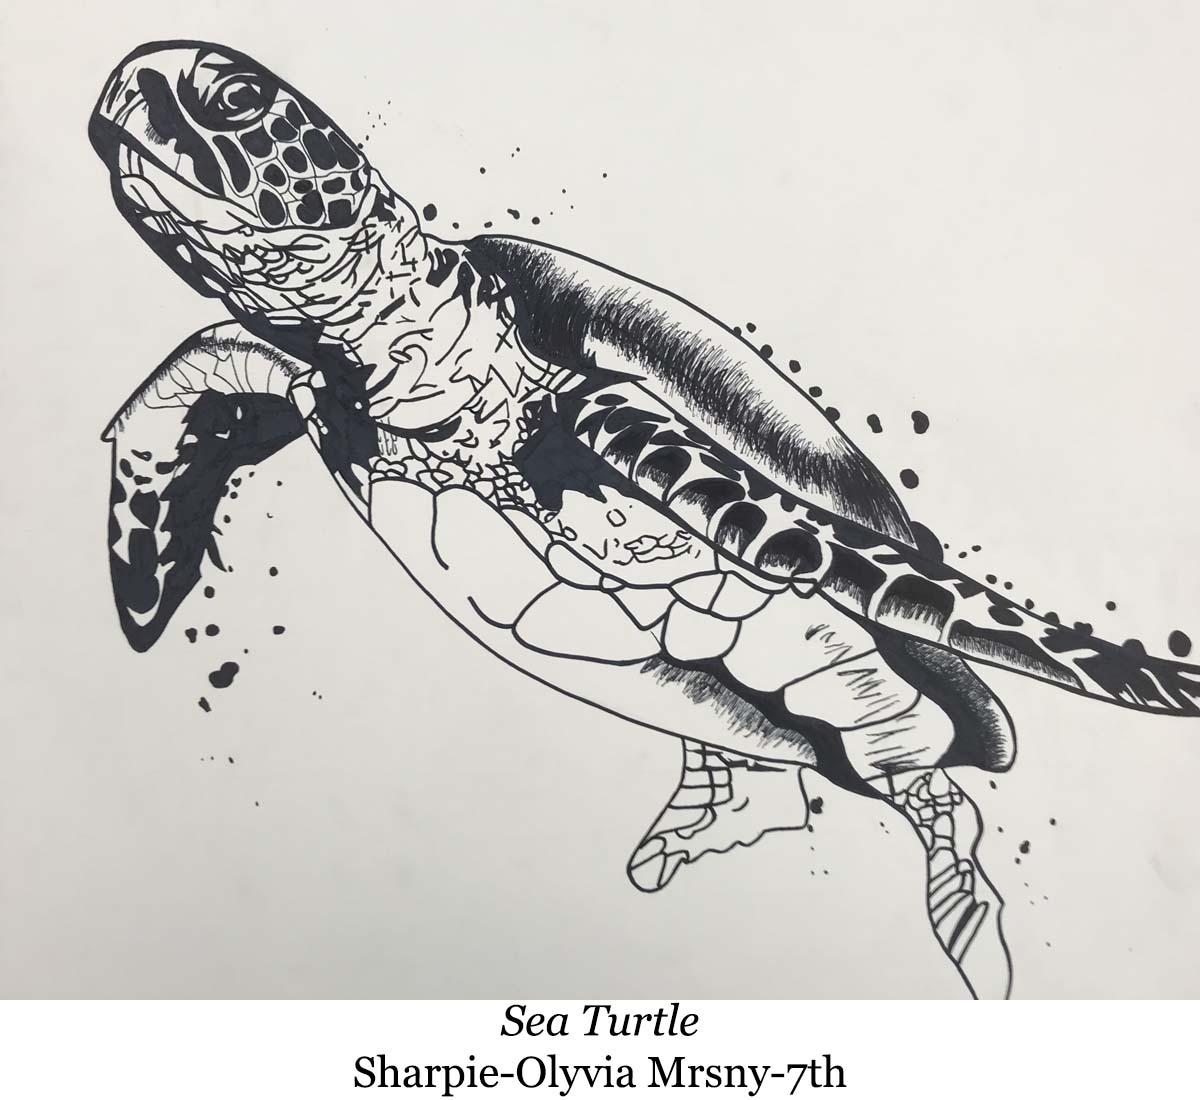 a drawing of sea turtle